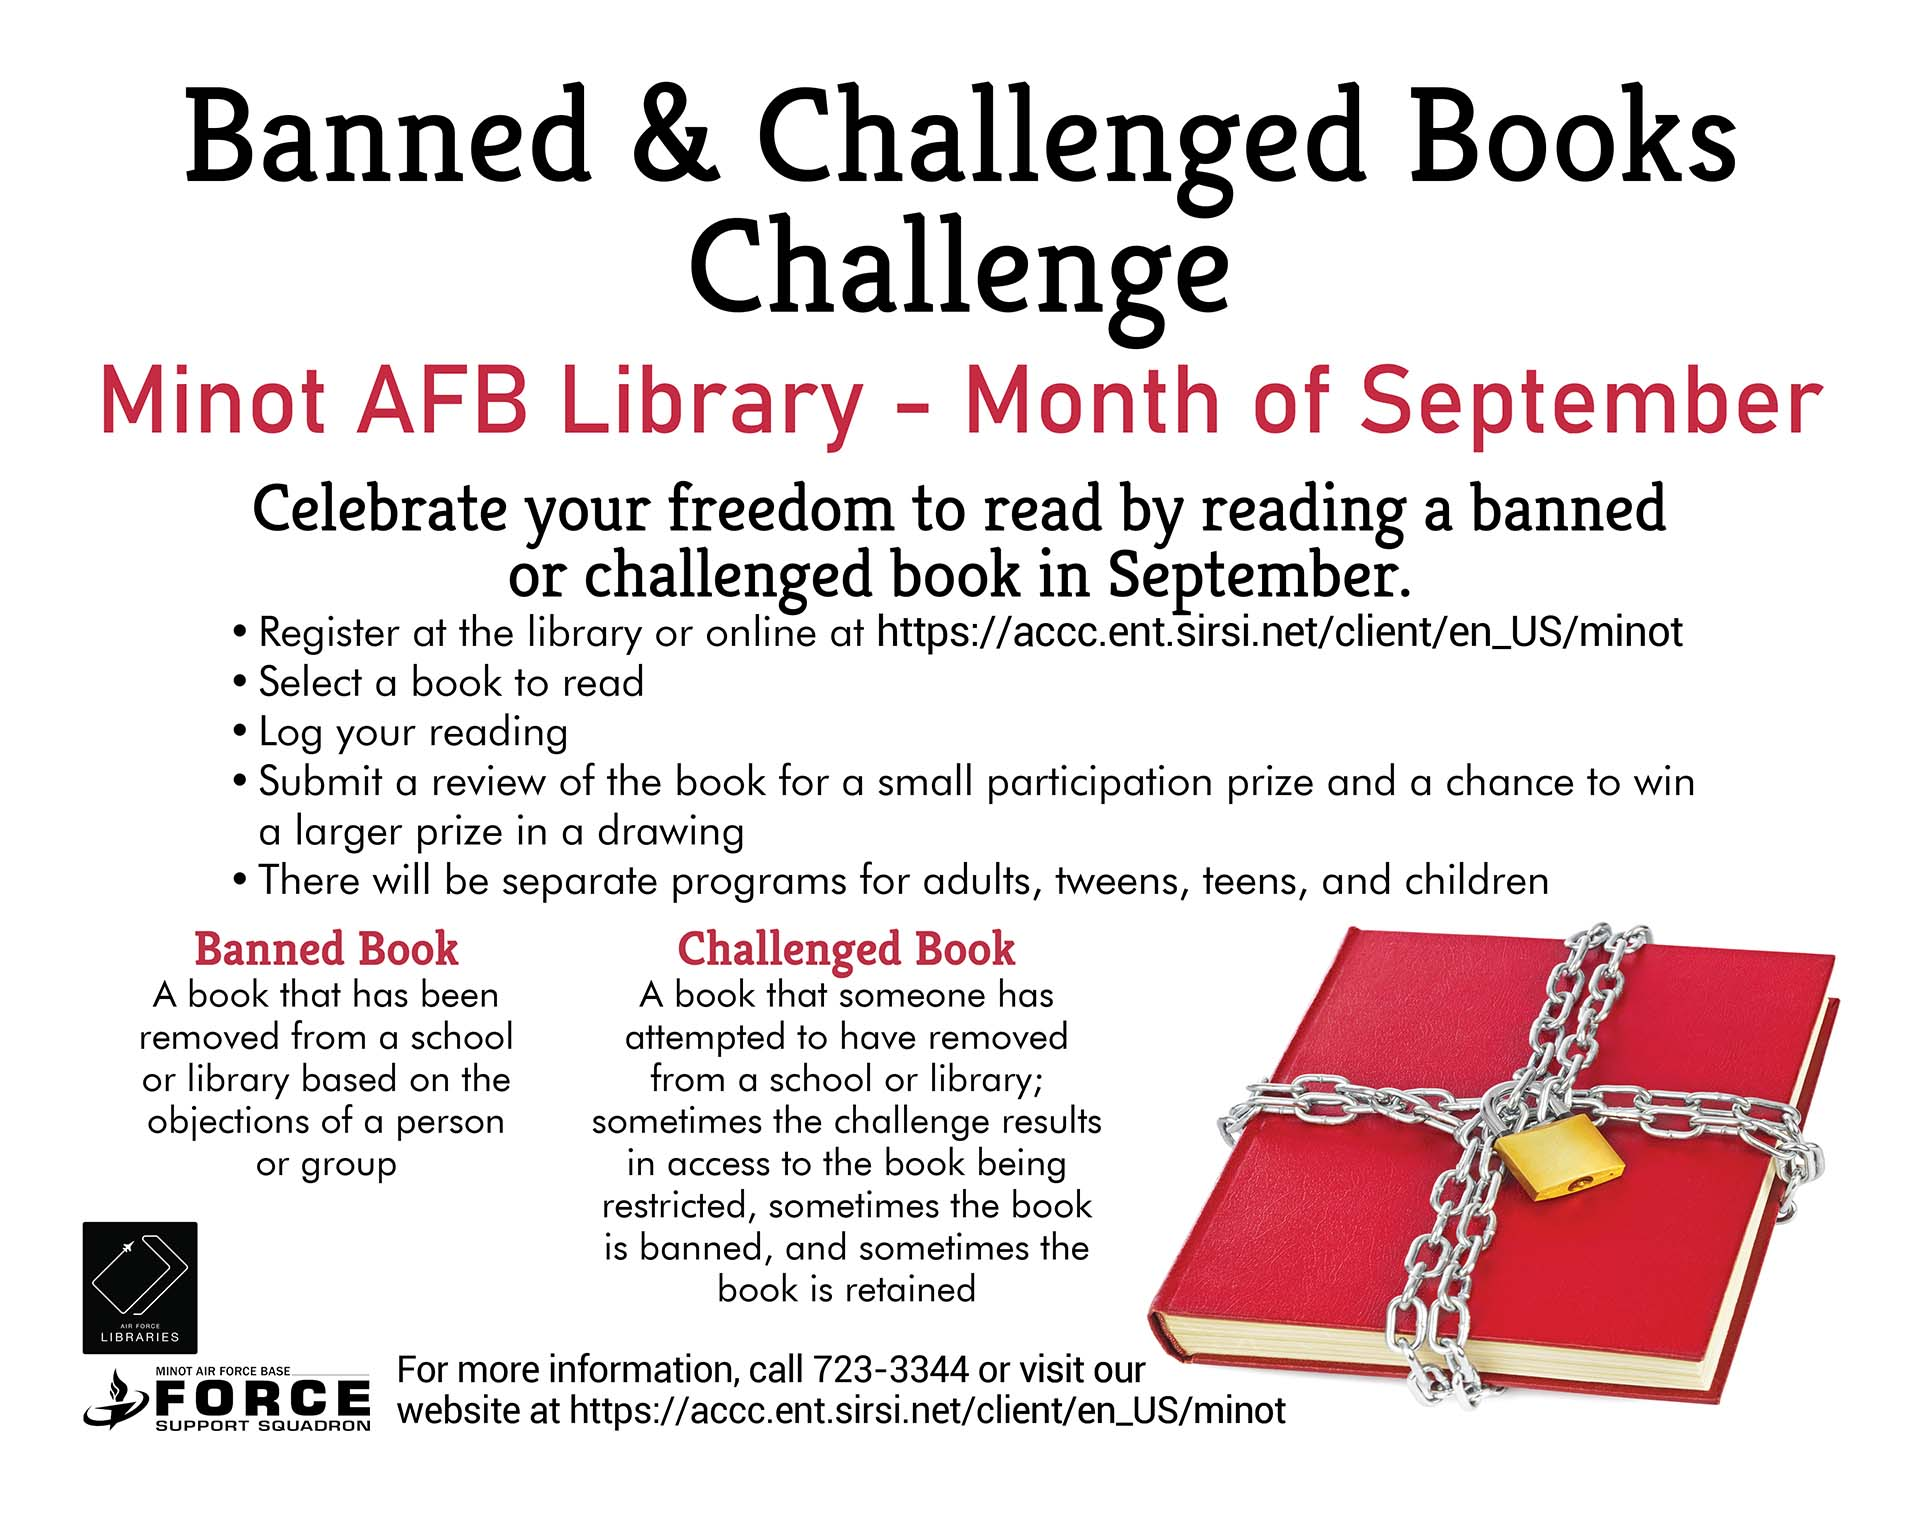 Banned & Challenged Books Challenge Ends